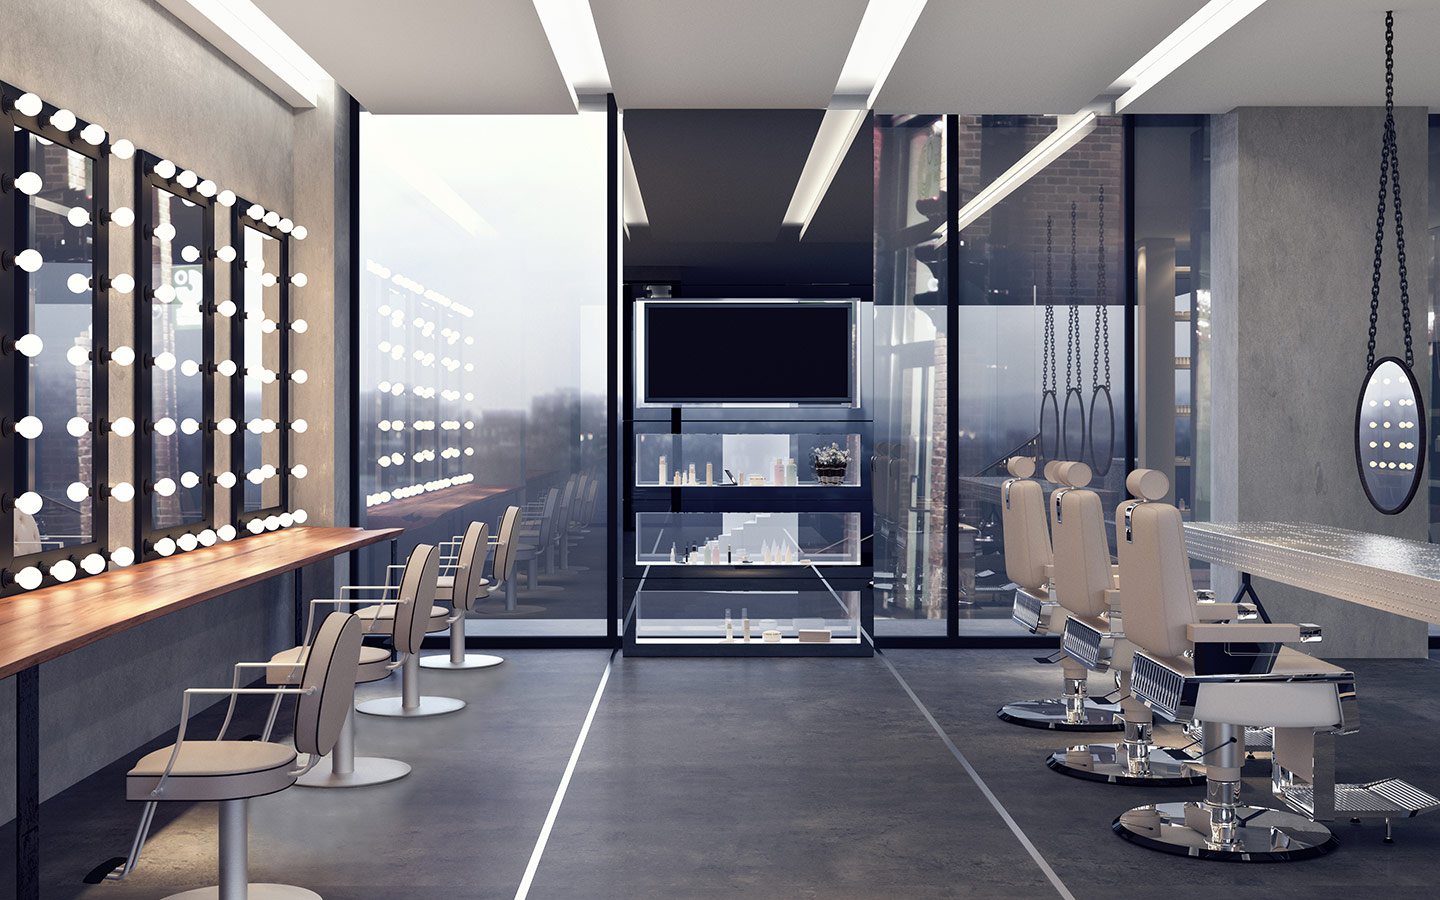 The facilities offered by salons in the UAE